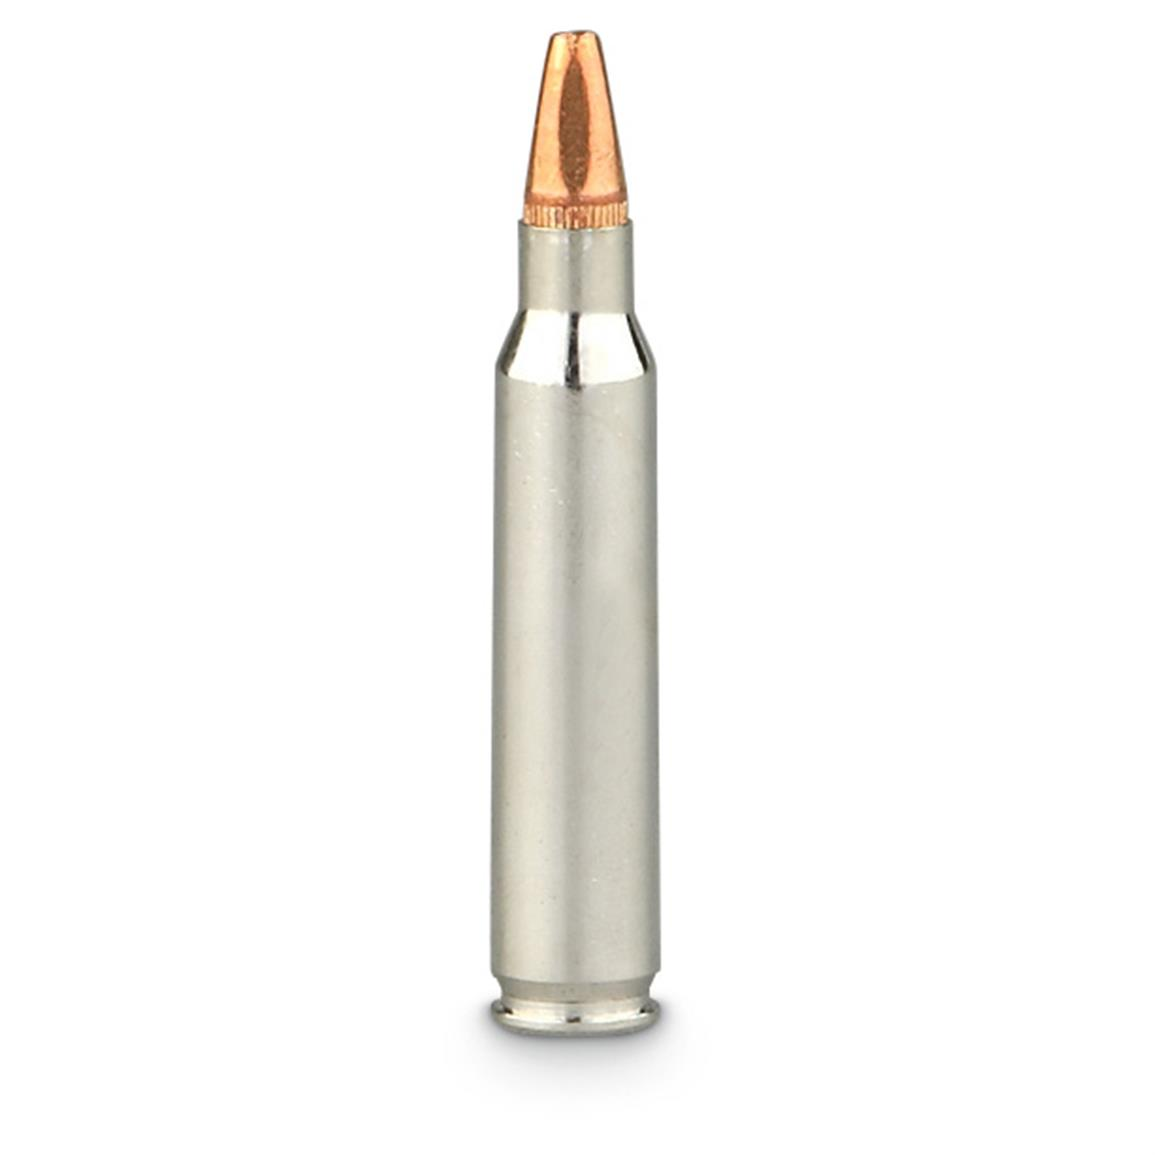 Lead-free, beveled-profile, hollow point bullet